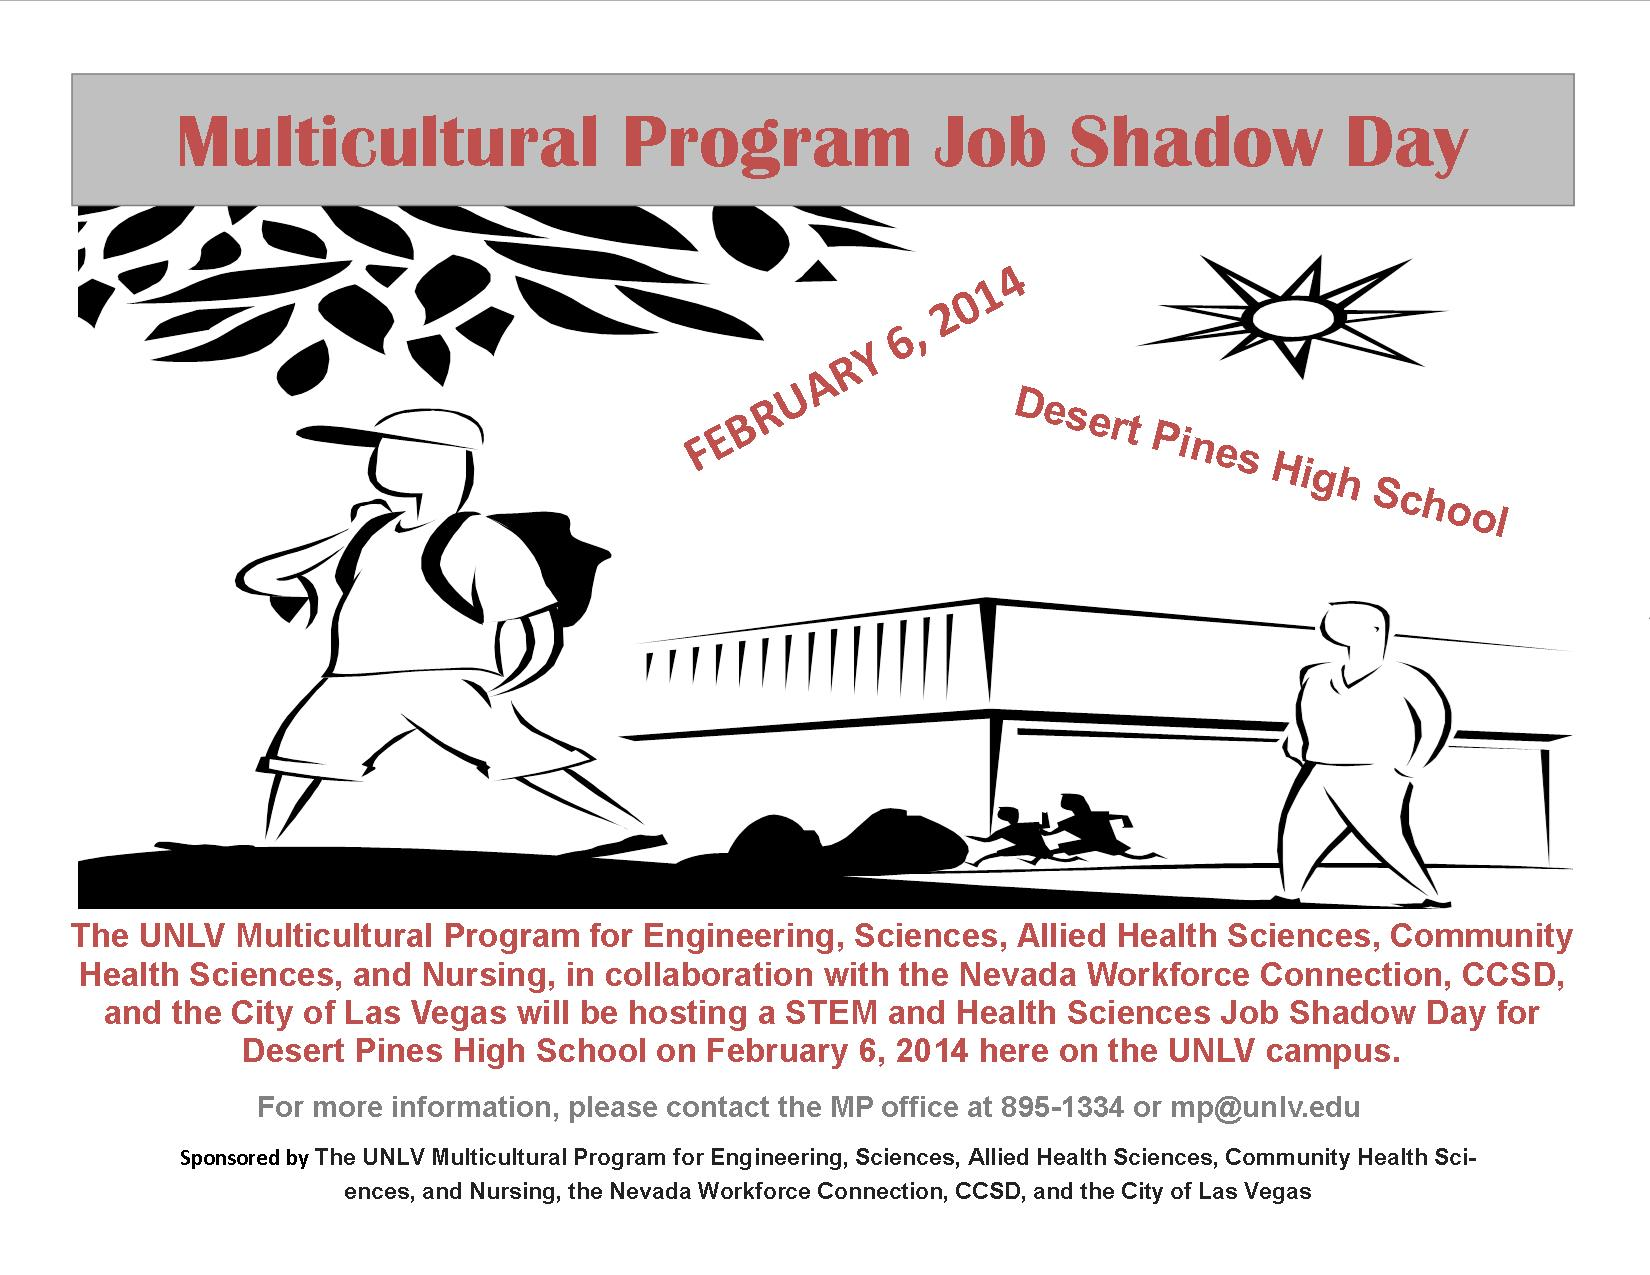 Multicultural Program Job Shadow Day